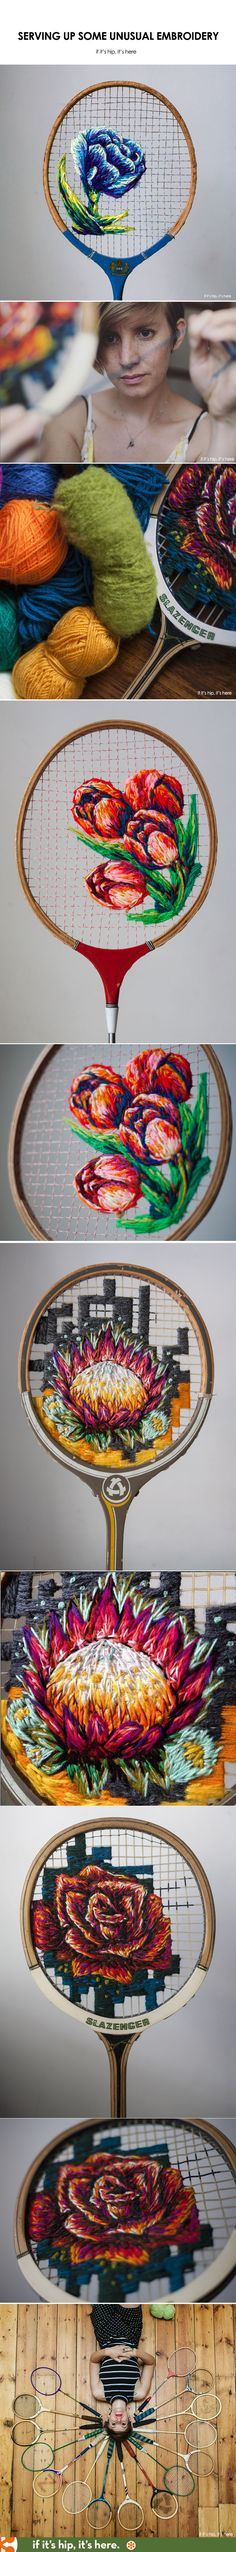 Danielle Clough Serves Up Some Unusual Embroidery - if it's hip, it's here